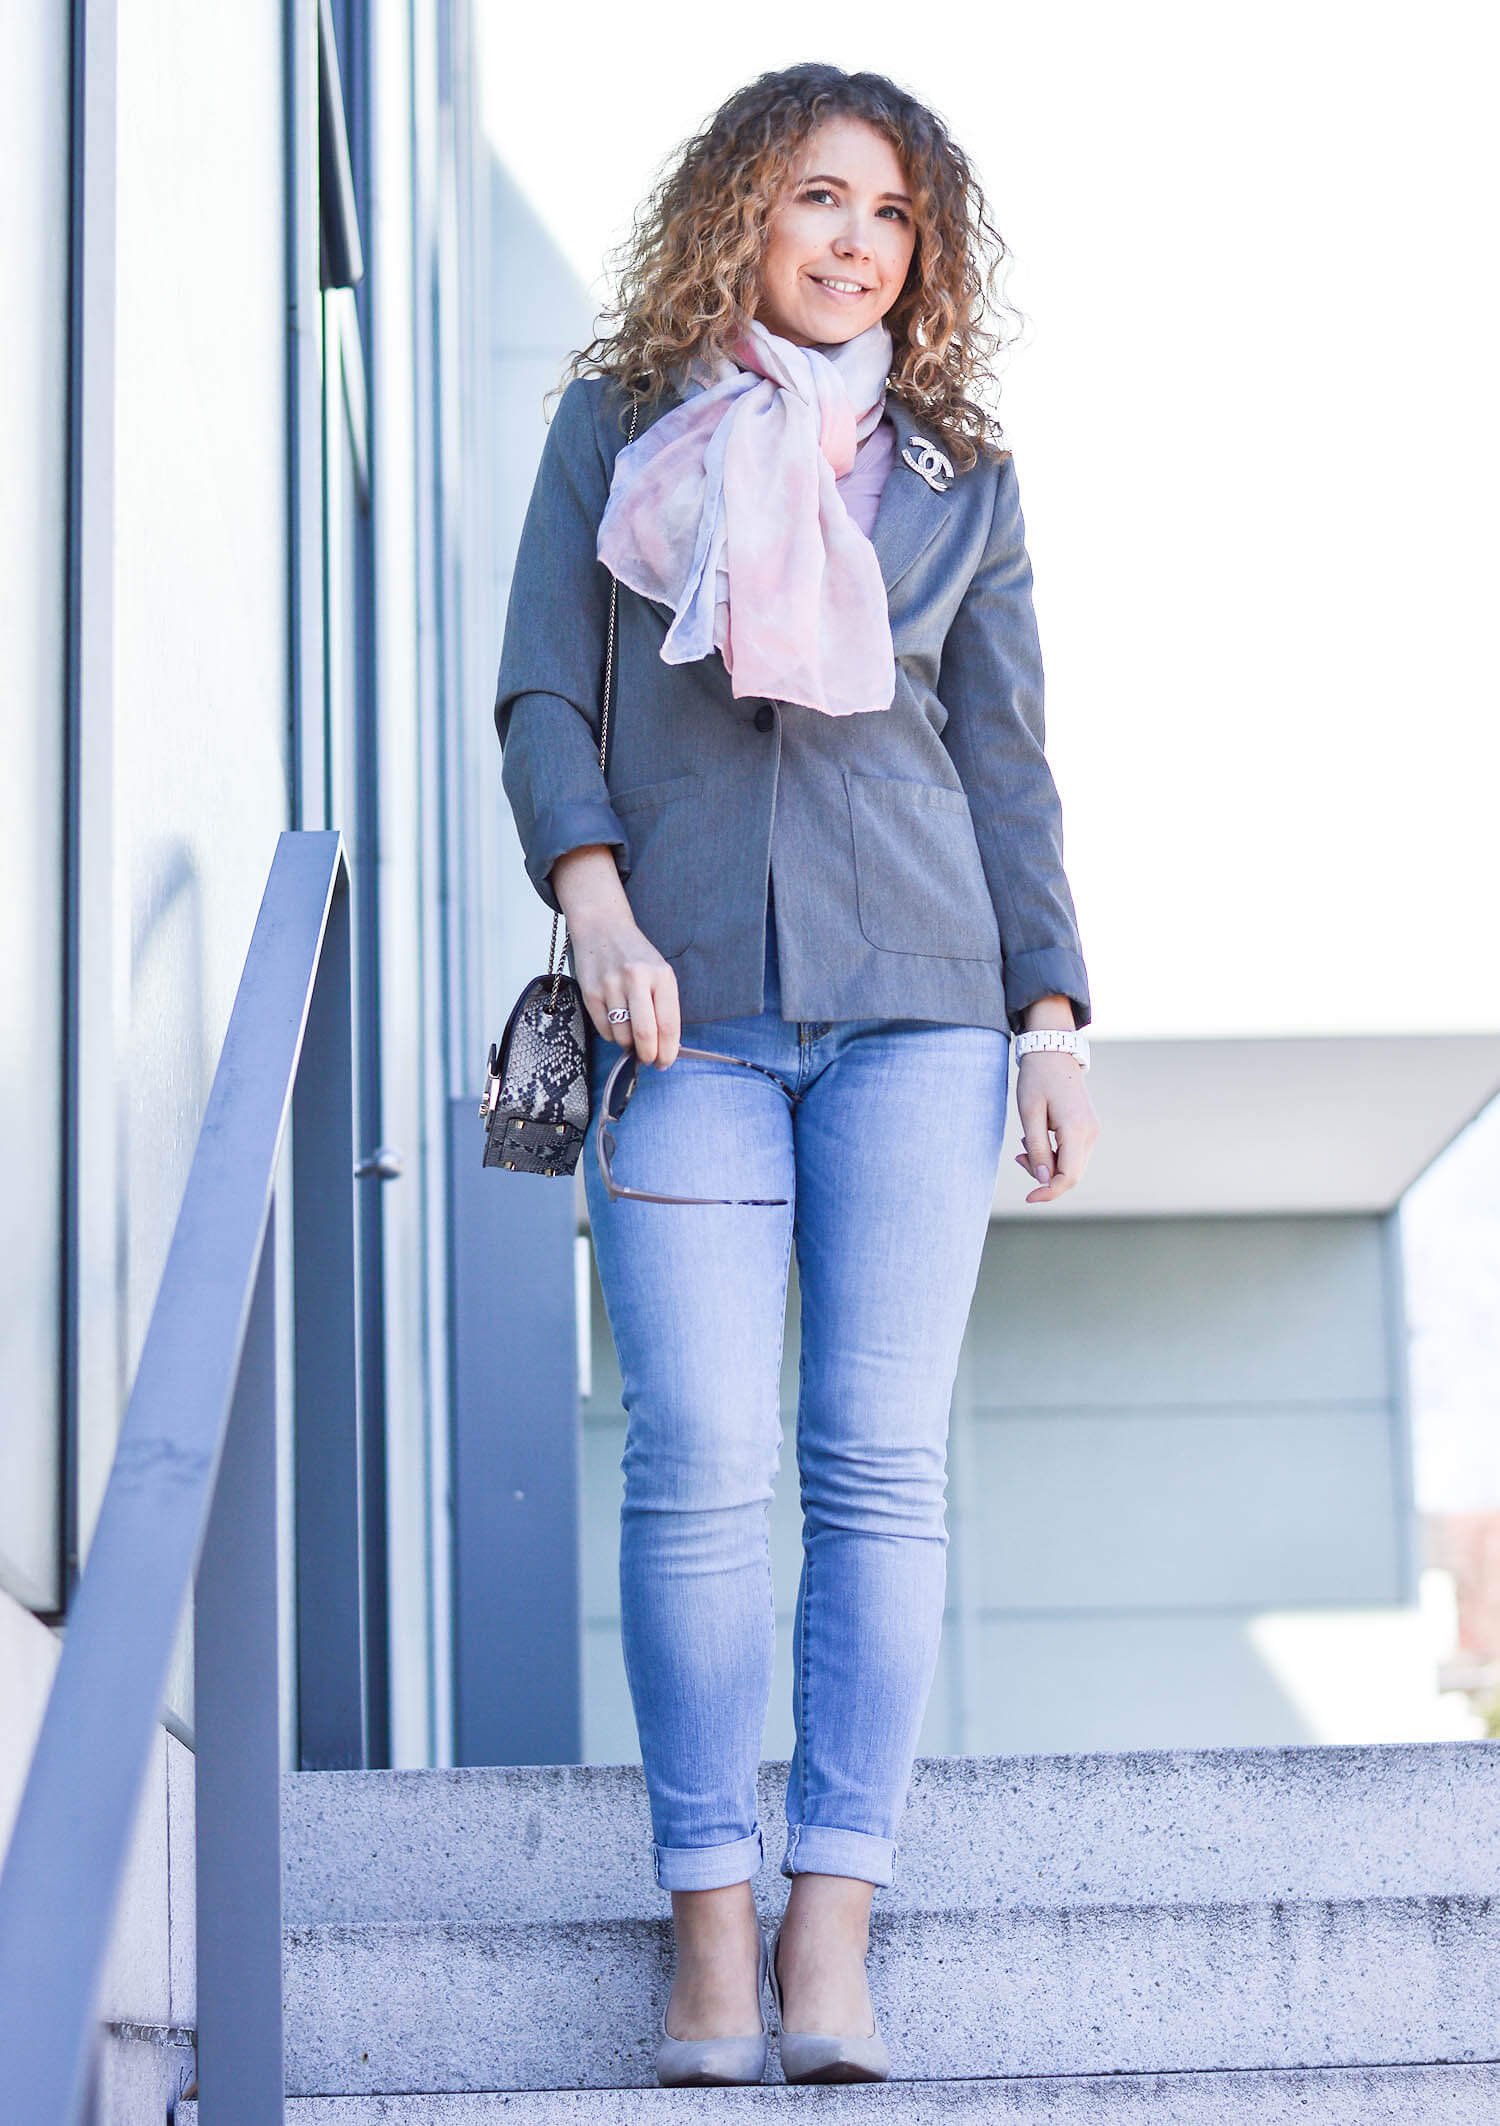 kationette-fashionblog-nrw-Outfit-Pastel-Spring-look-furla-chanel-streetstyle